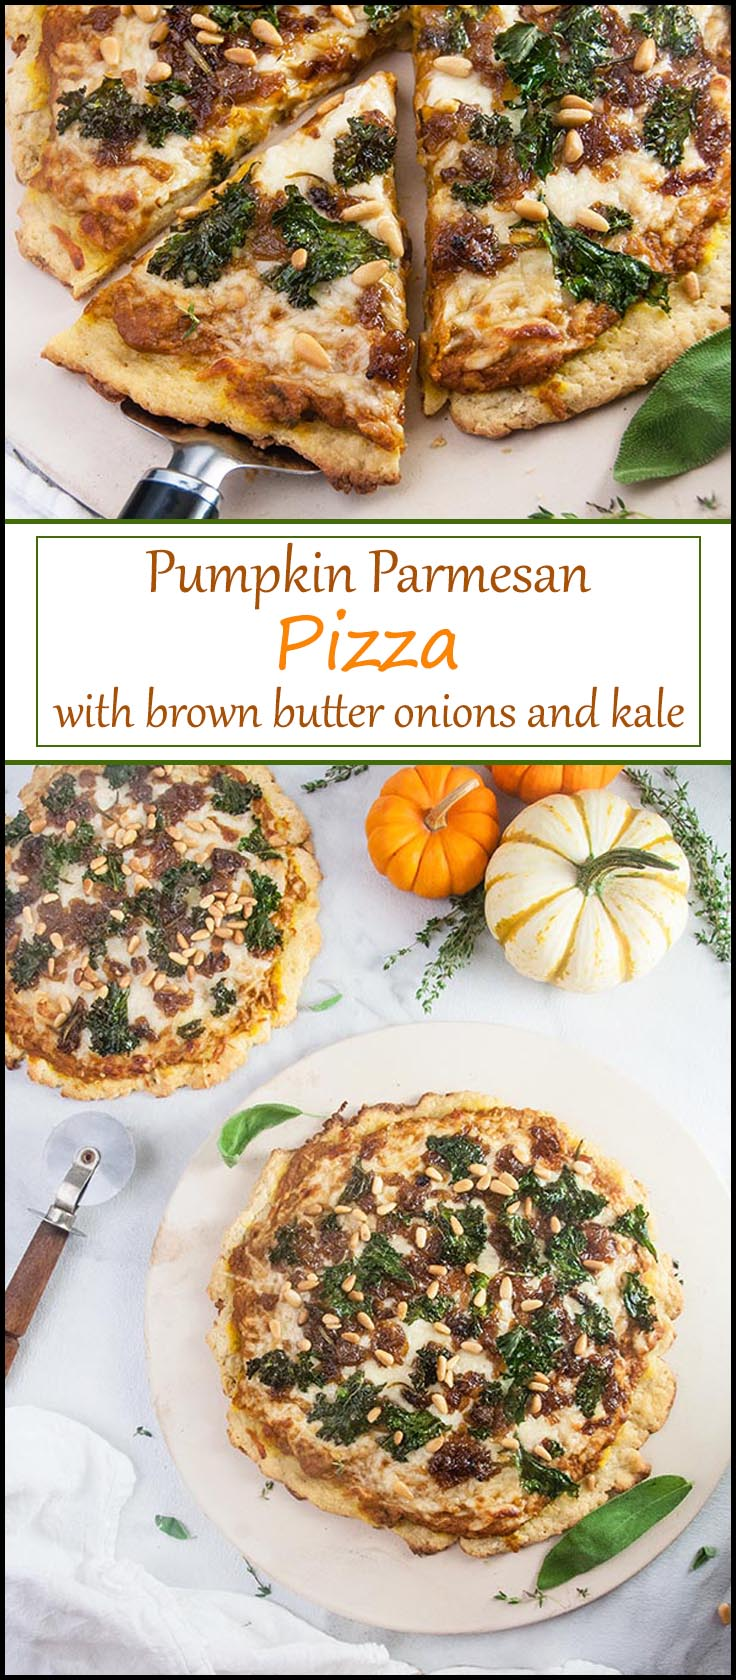 The Perfect Fall Pizza: Pumpkin Parmesan Pizza with Brown Butter Caramelized Onions and Kale